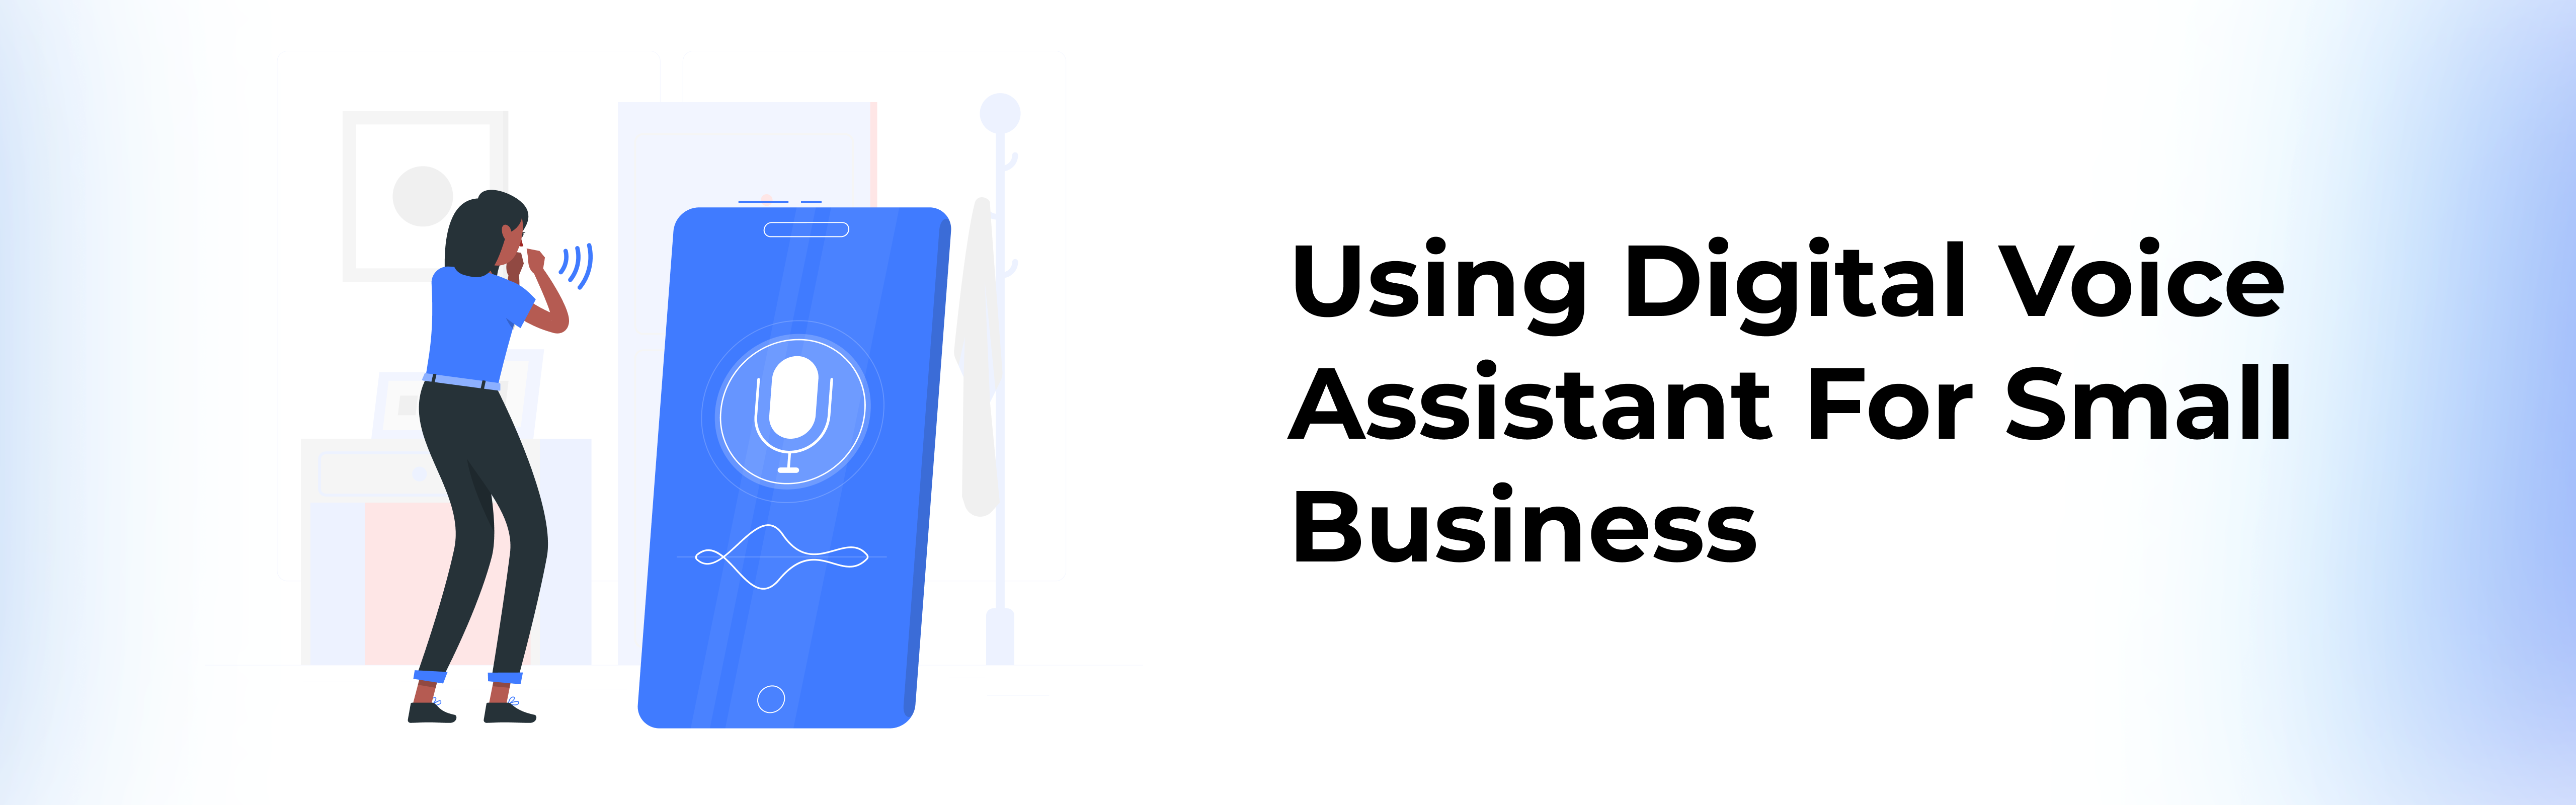 using-digital-voice-assistants-for-small-business